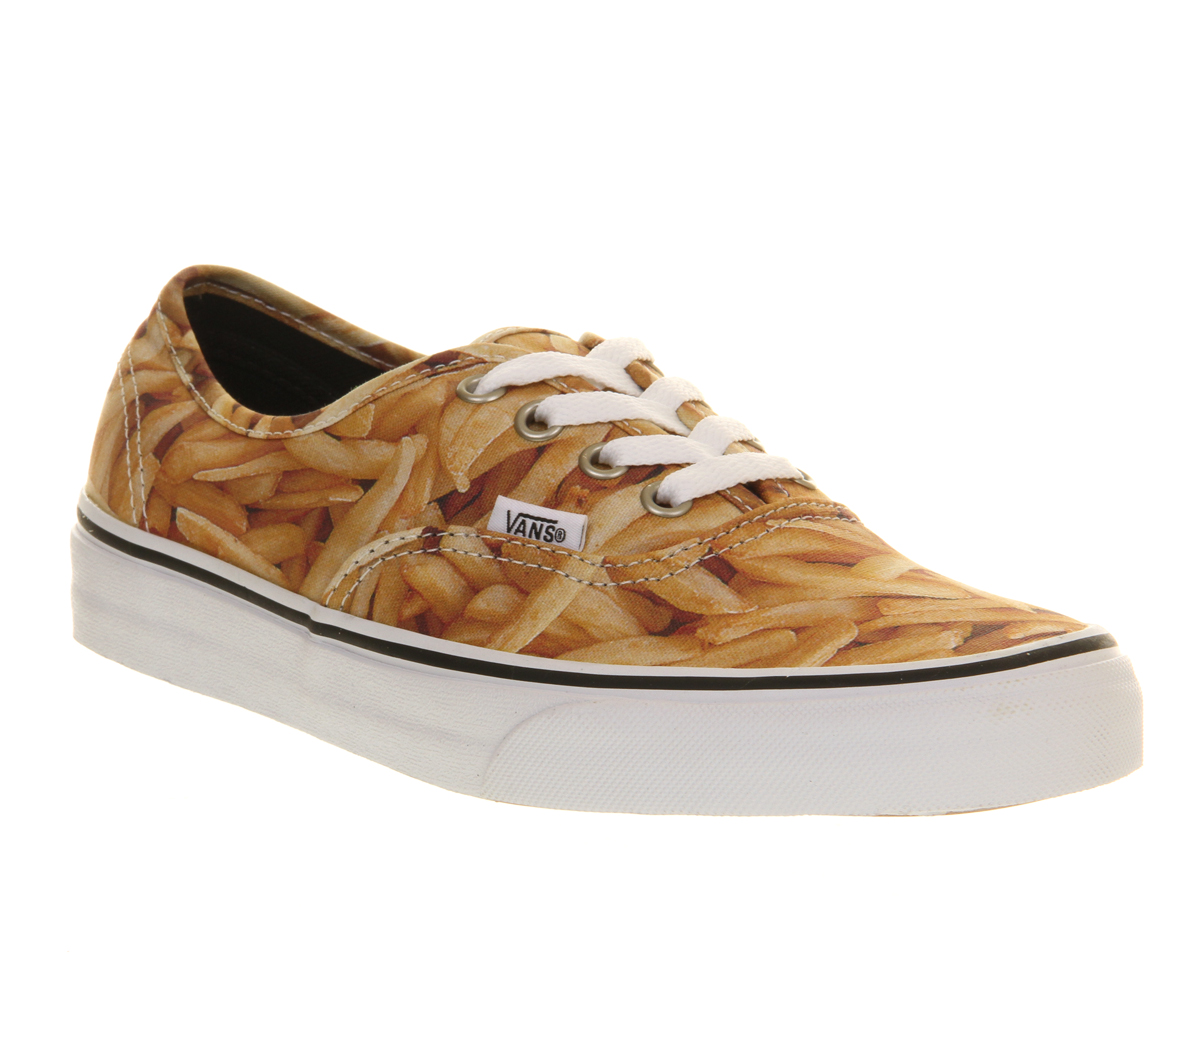 Vans Authentic French Fries SMU Exclusive Trainers Shoes | eBay